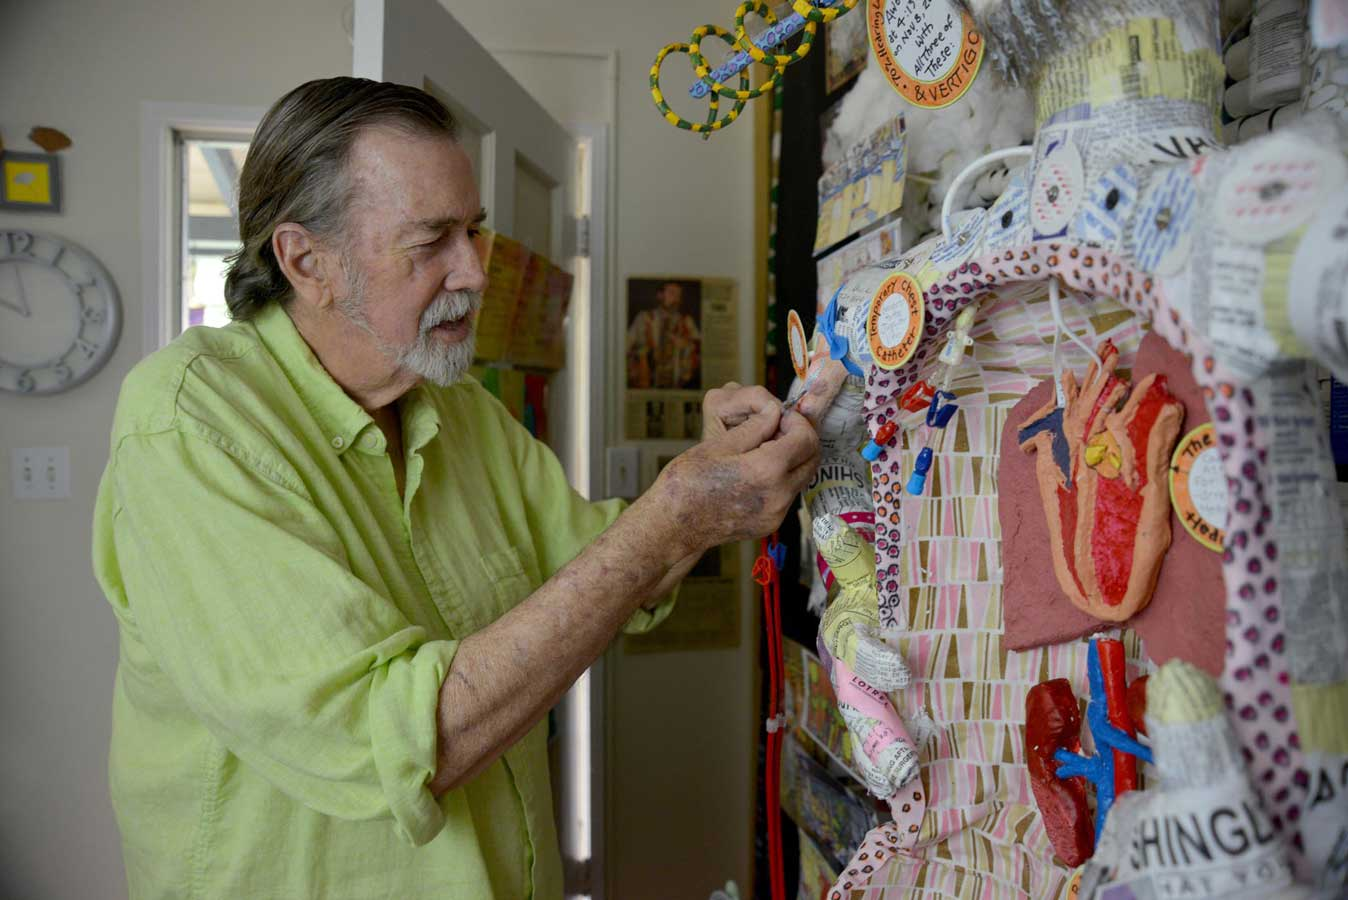 Thousands of hours of medical treatment inspired artist Philip Carey - 4/11/18